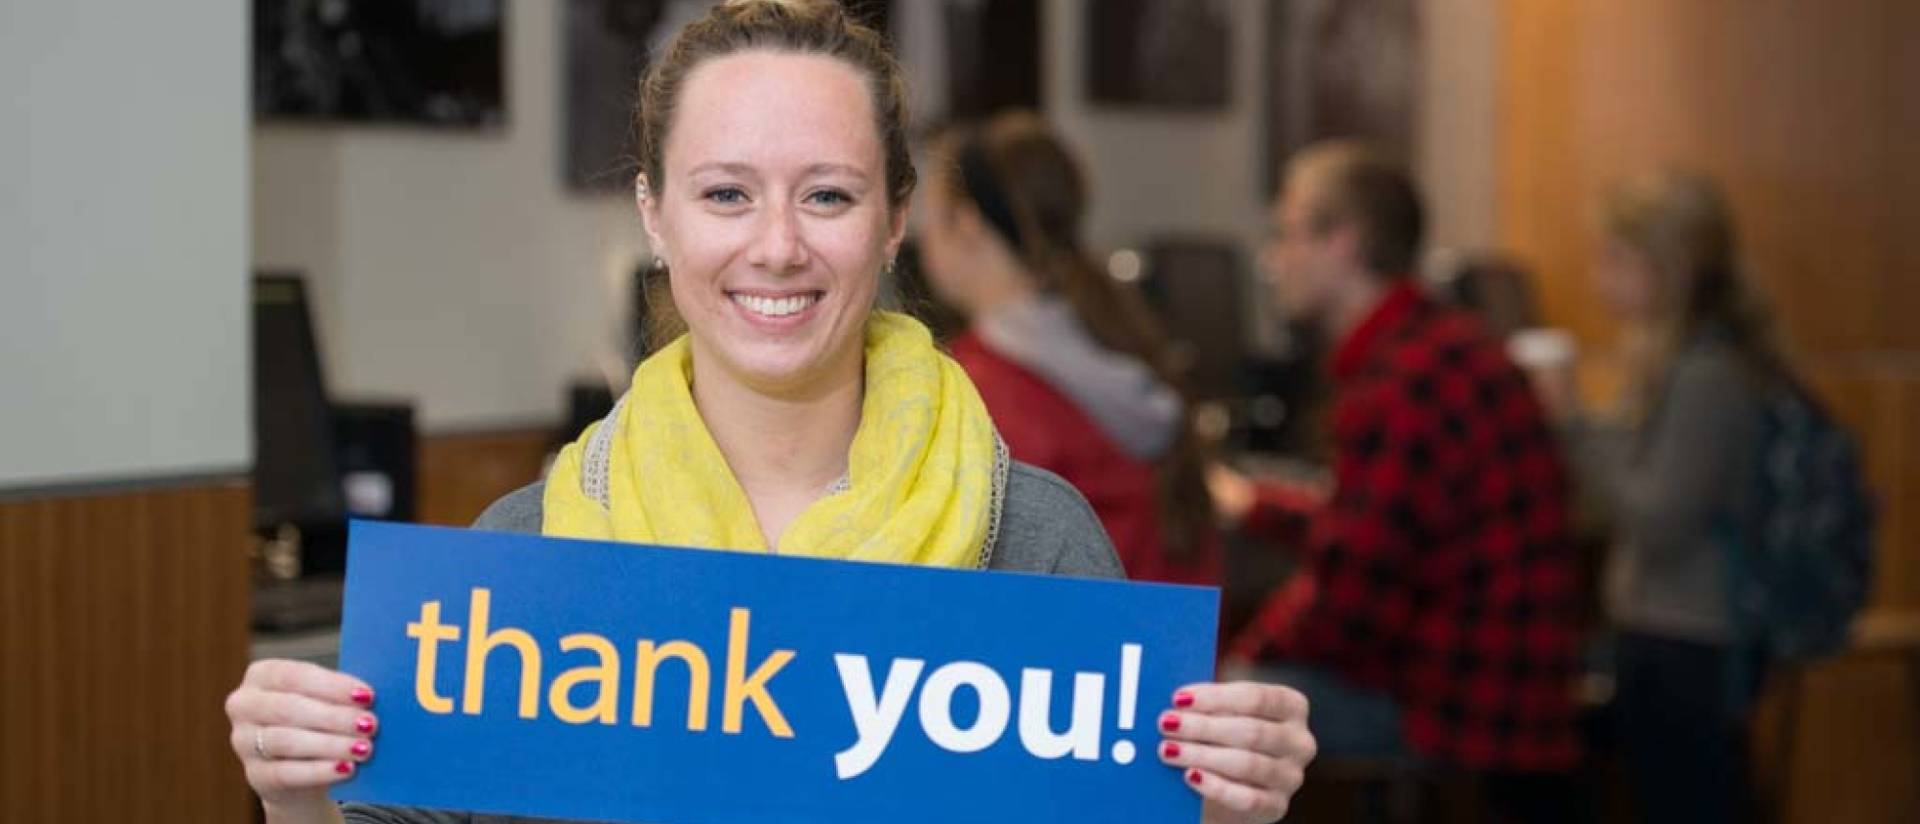 UW-Eau Claire scholarship recipient holding thank you sign.